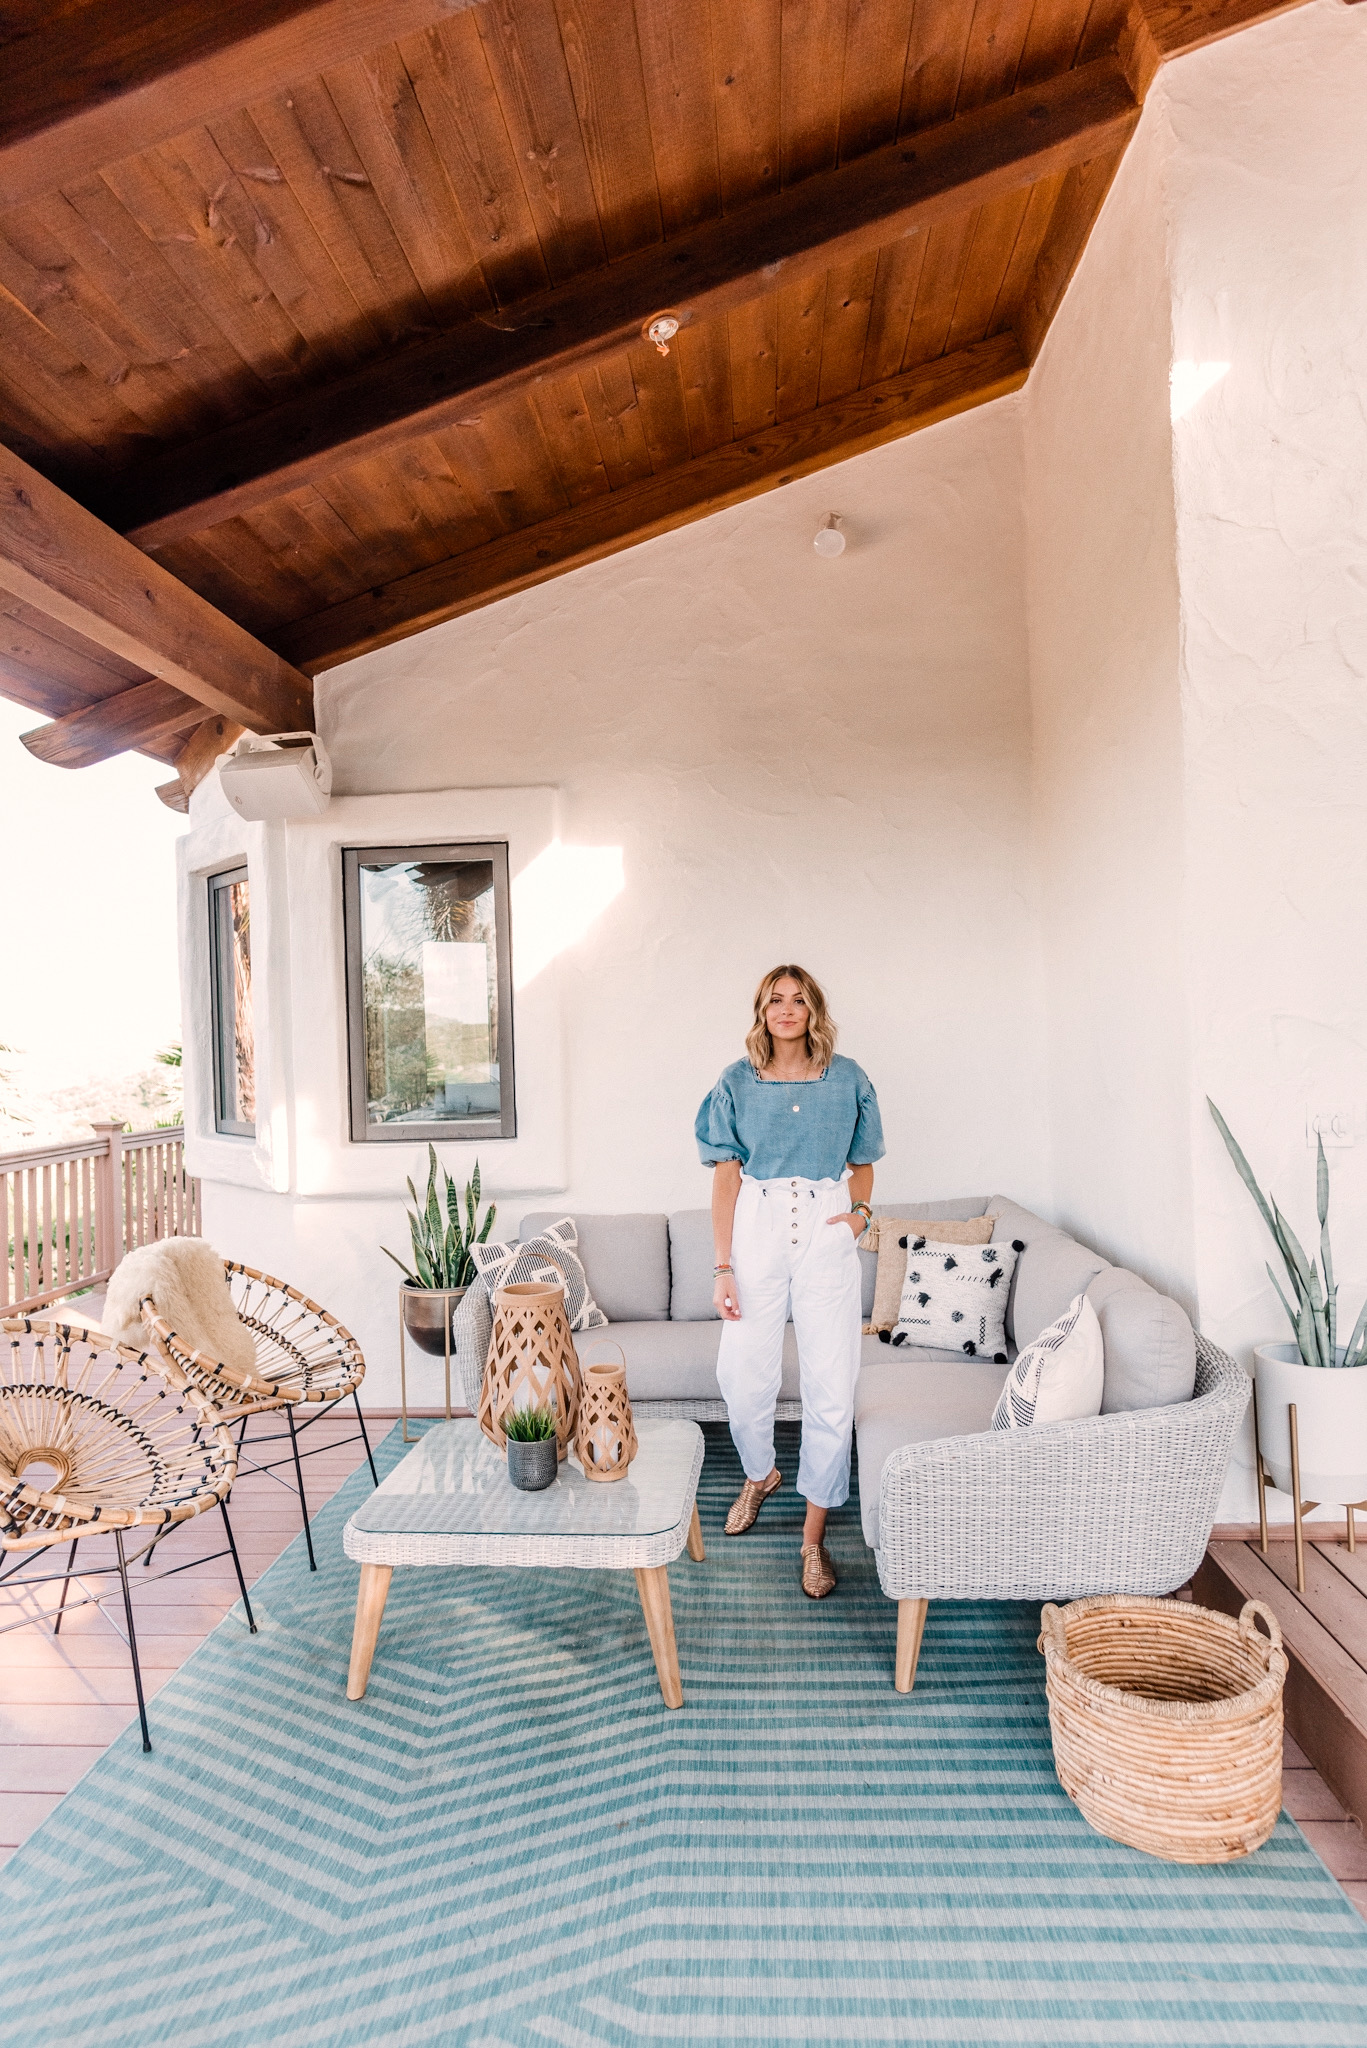 CB2 OUTDOOR DECOR featured by top San Diego lifestyle blogger, Navy Grace.   CB2 Furniture by popular San Diego life and style blog, Navy Grace: image of a woman outside on her patio decorated with a CB2 hurricane lantern, Seminyak Gray Planter, snake tongue plants, blue outdoor rug, woven wicker outdoor couch, woven wicker coffee table, woven basket, and Rattan chairs.